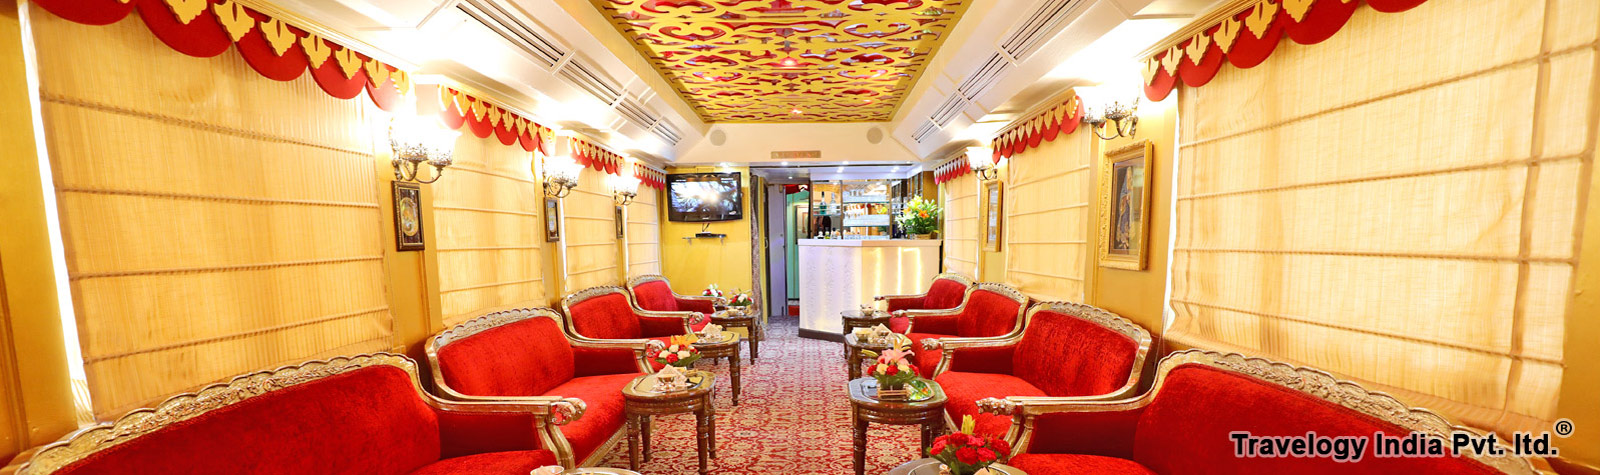 Wheels Auto Electrical Wiring Diagram M2 Hydrocollator Palace On Royal Journey Of Luxury Train India